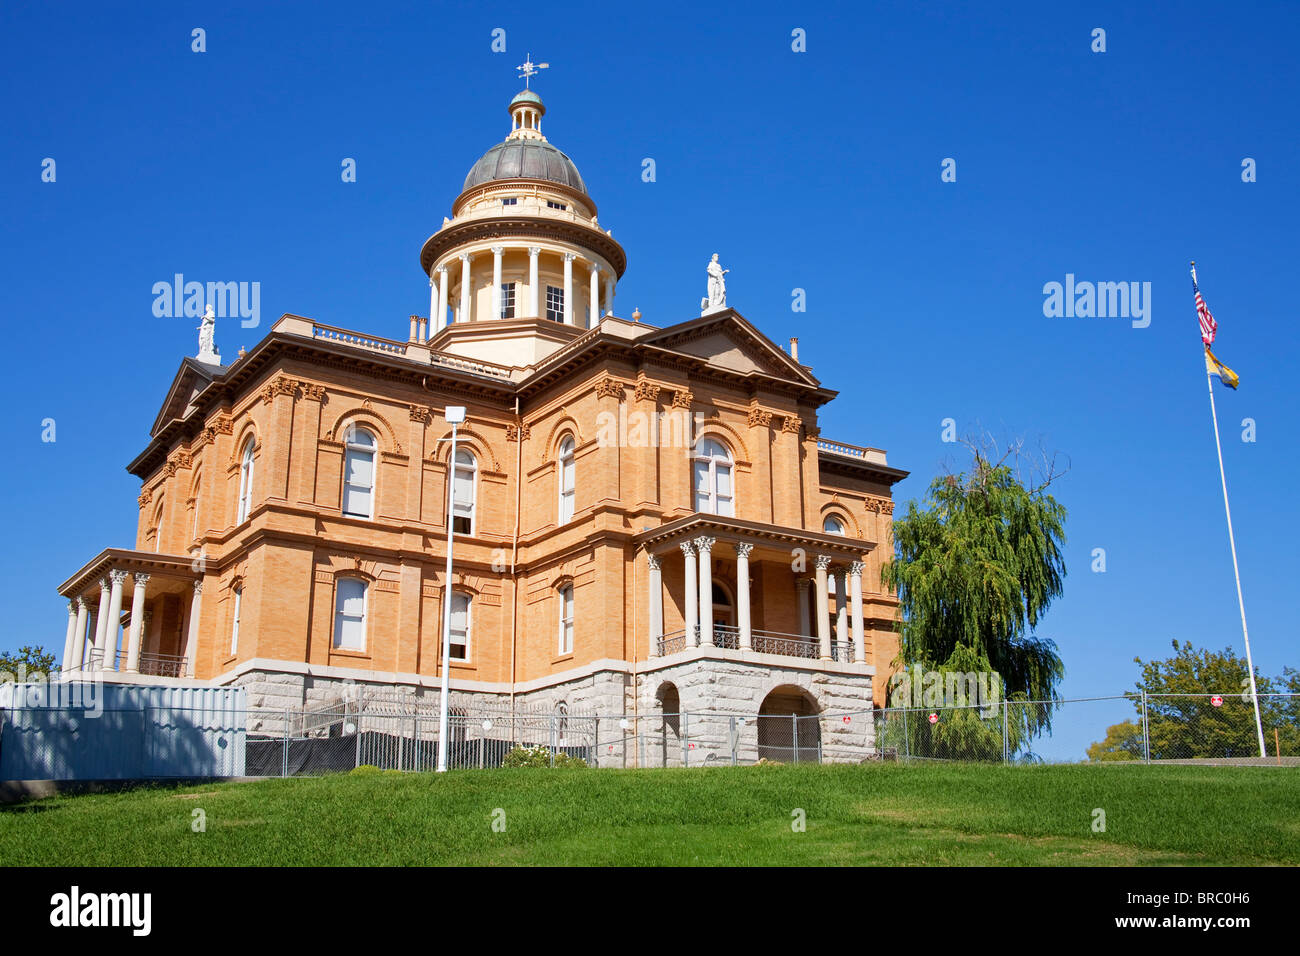 Placer County Courthouse in Auburn, California, USA - Stock Image